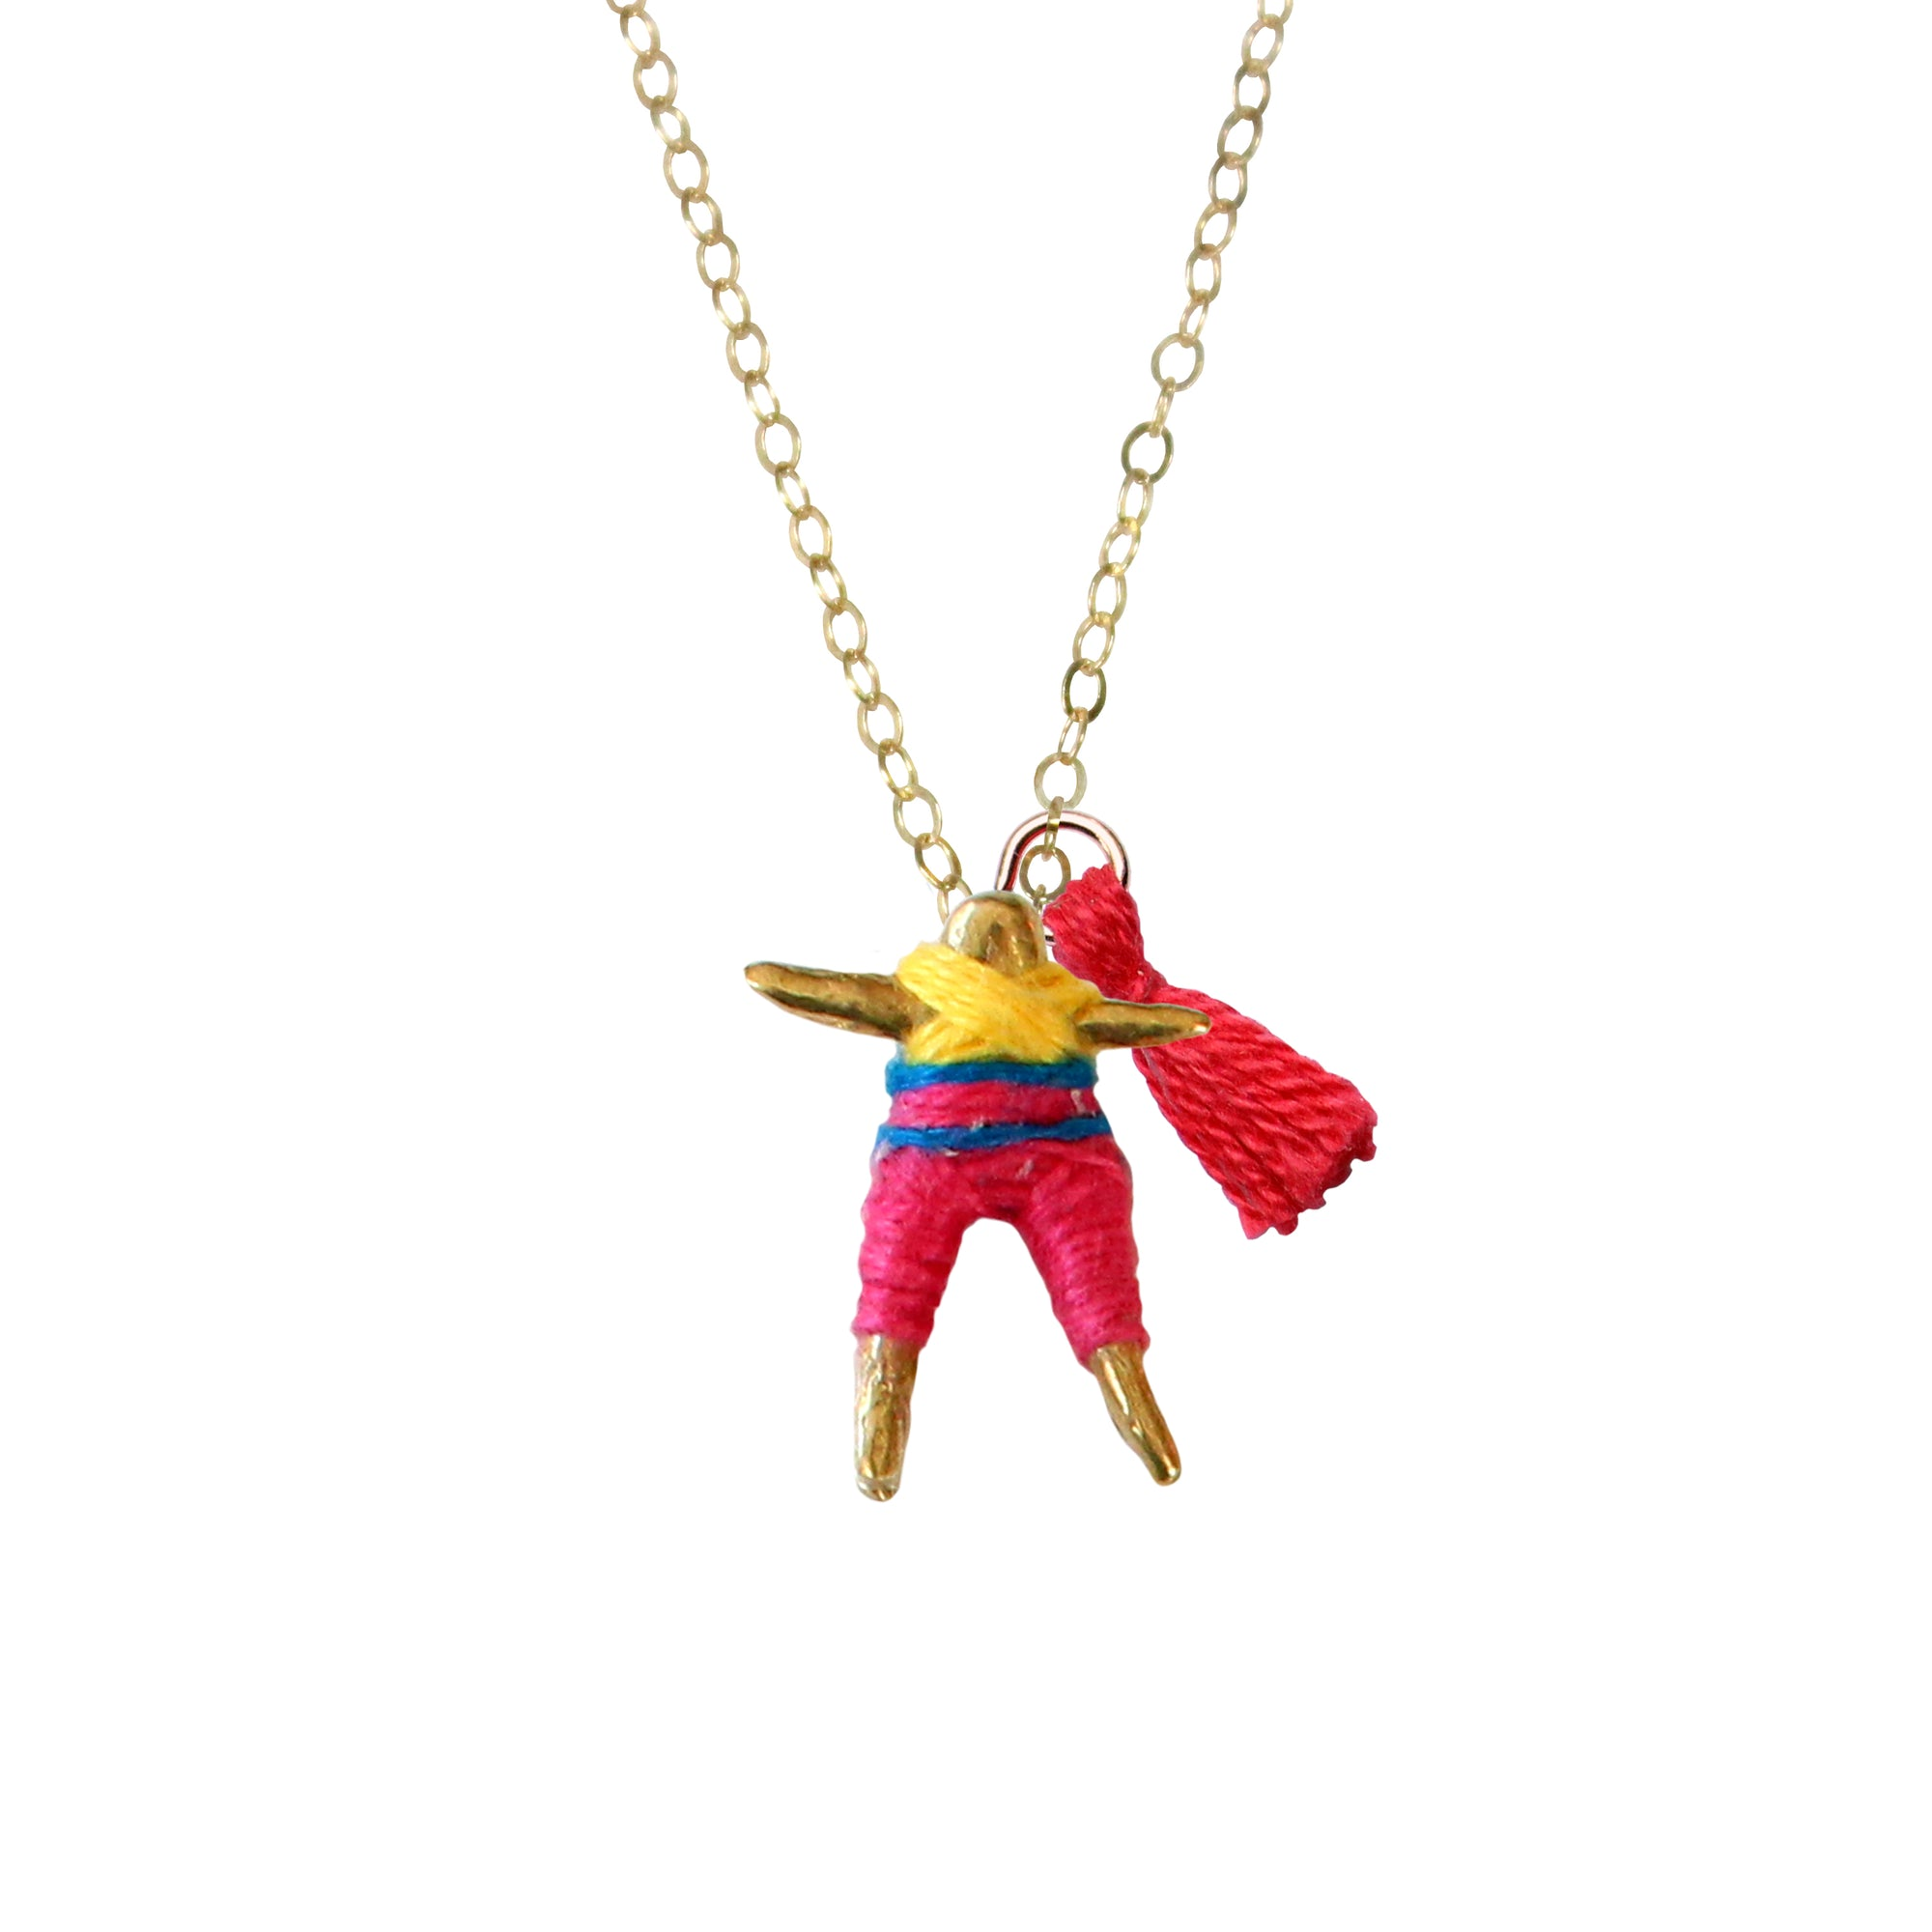 Fuchsia & Sunflower Worry Doll Necklace 18""